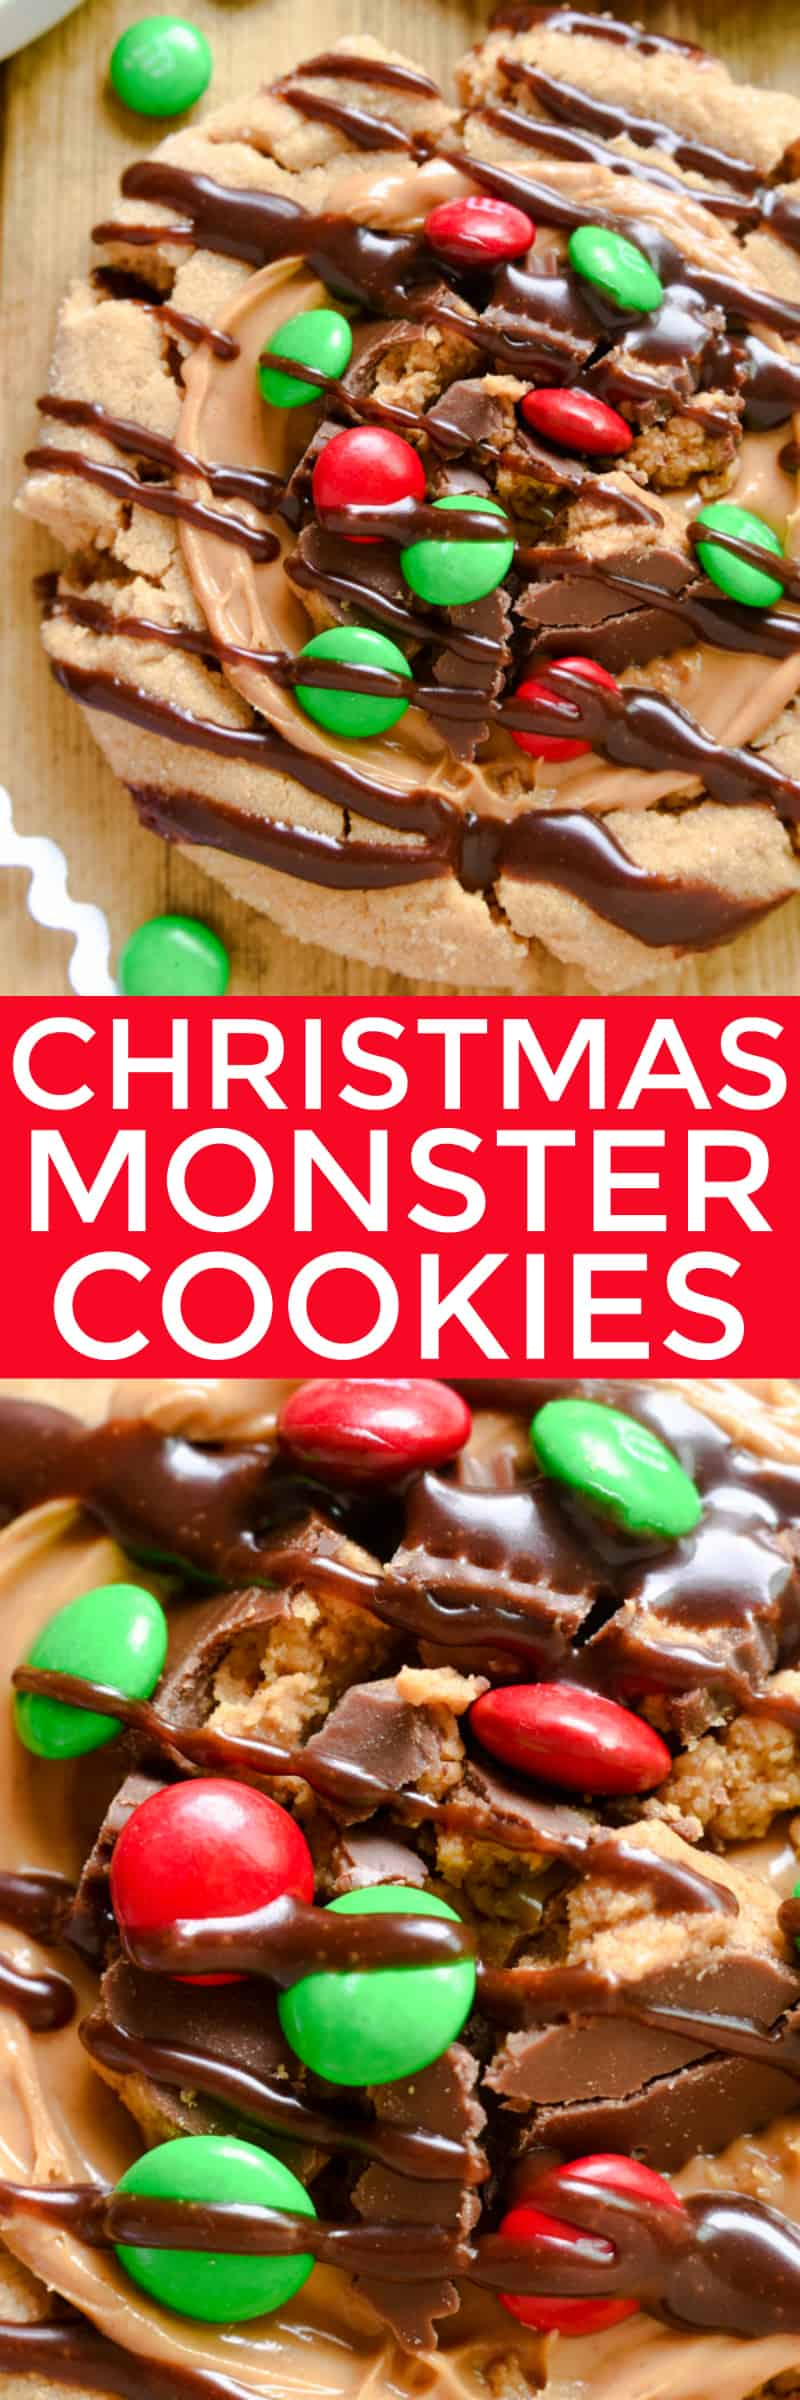 If you LOVE peanut butter, these Christmas Monster Cookies are for you! They start with the best peanut butter cookies, topped with creamy peanut butter, peanut butter cups, red & green M&M's, and a delicious drizzle of chocolate ganache. Seriously loaded and seriously amazing! These cookies make the perfect gift for neighbors, teachers, or friends. They can easily be packaged separately, and everyone will go crazy for the giant explosion of flavor in every single bite. You can't go wrong with the delicious peanut butter + chocolate combo!